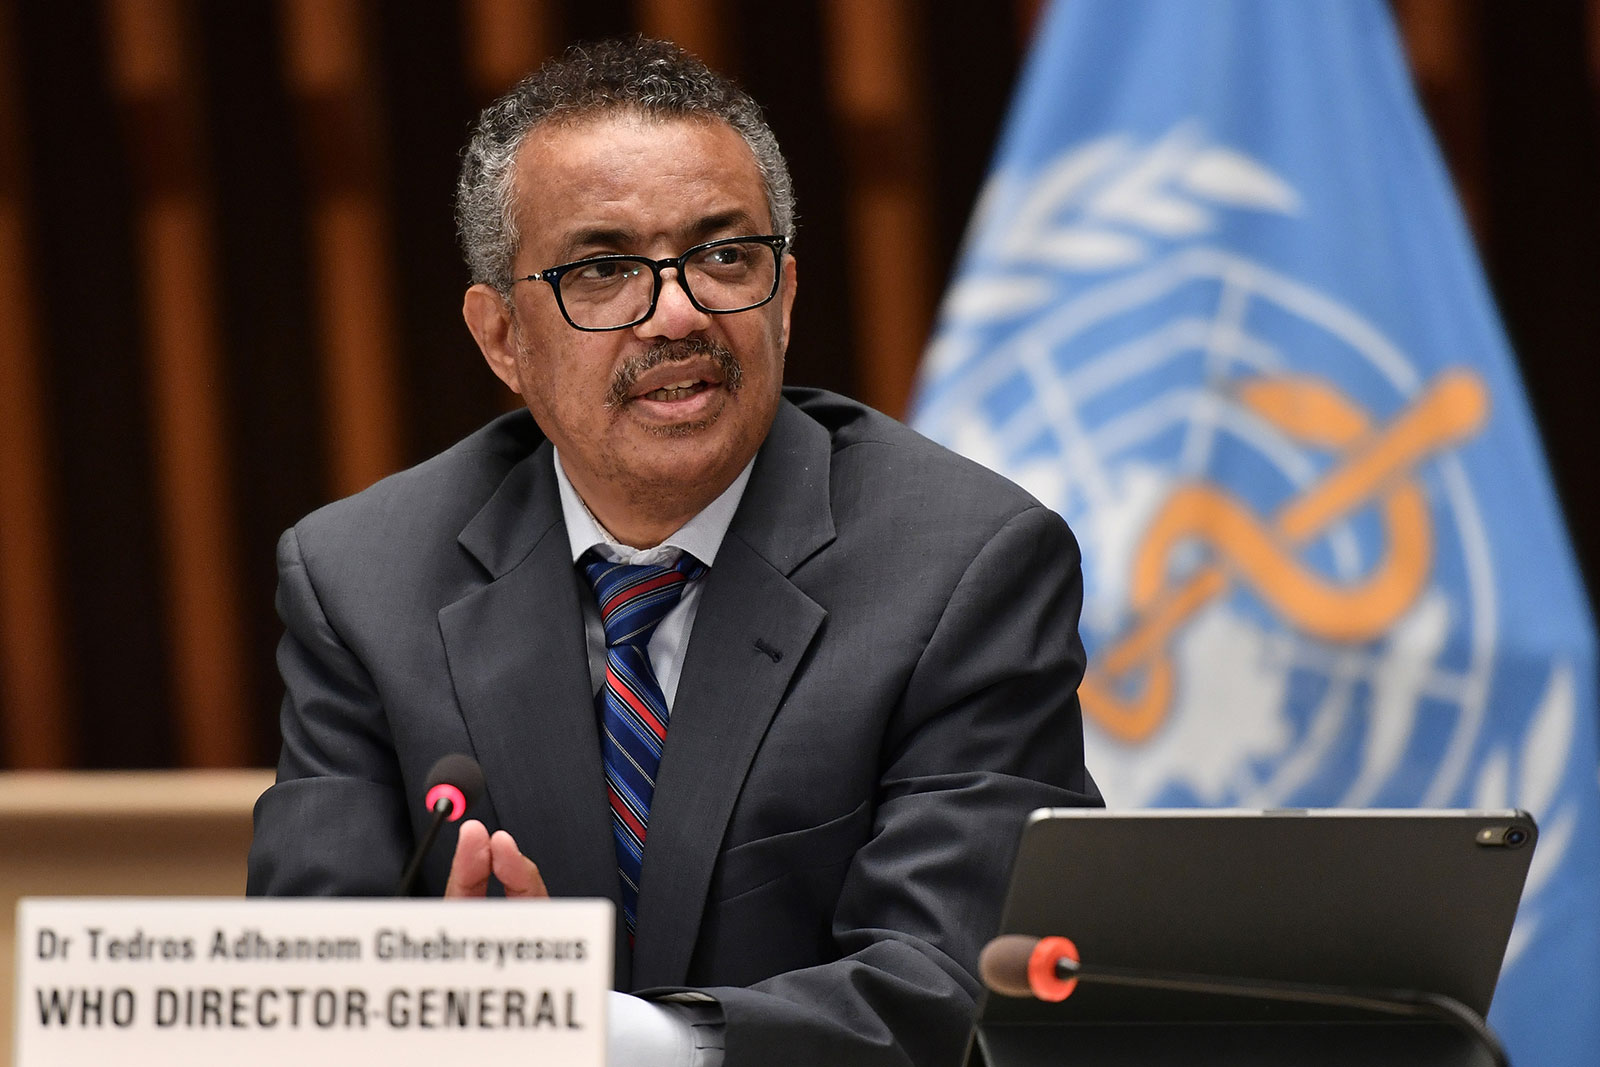 WHO Director-General Tedros Adhanom Ghebreyesus attends a press conference organized by the Geneva Association of United Nations Correspondents (ACANU) amid the Covid-19 outbreak on July 3, 2020 in Geneva.